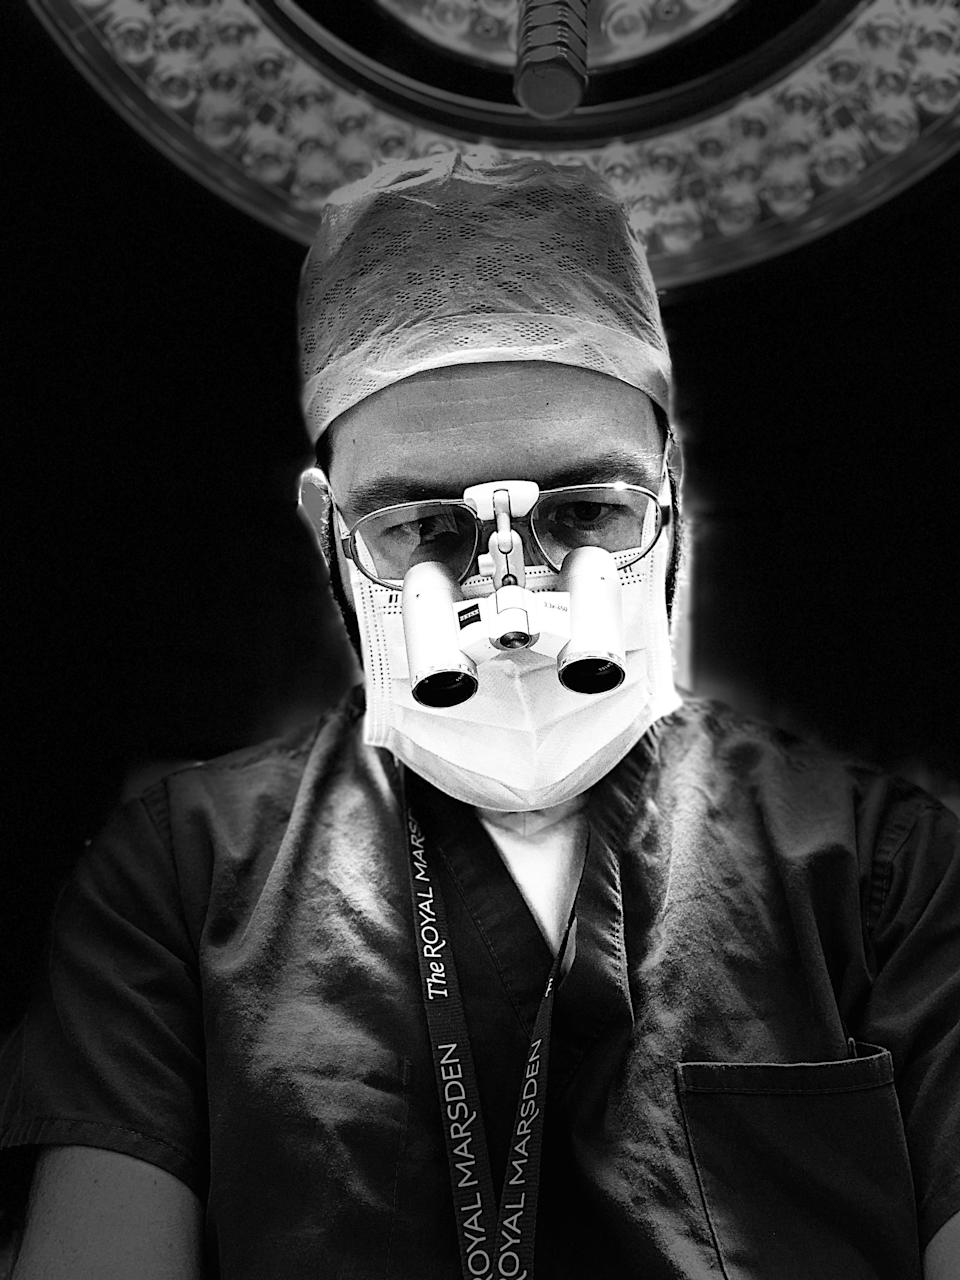 A black and white photo of a surgeon in an operating theatre. He is weirding a mask and glasses,